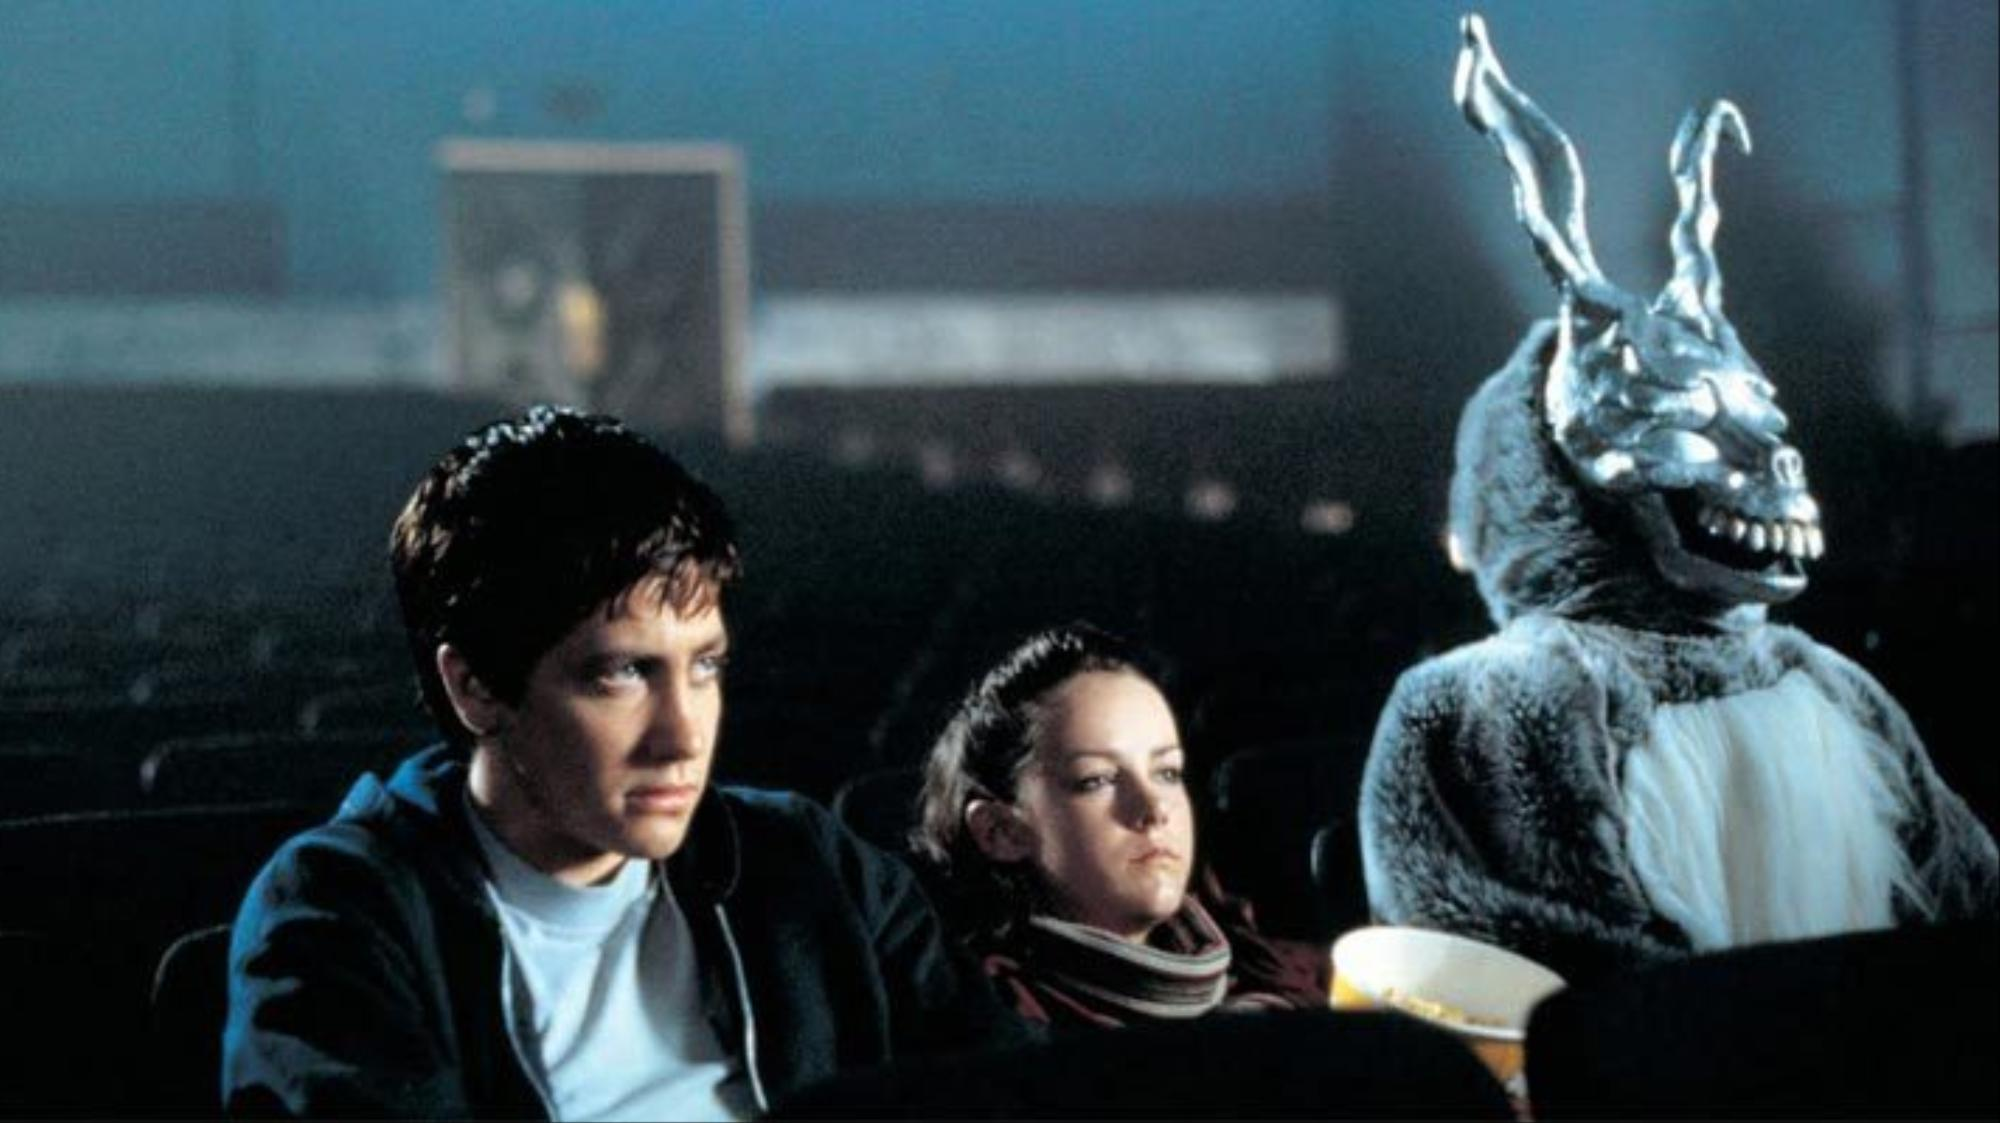 'donnie darko' director planning 'much bigger and more ambitious' sequel